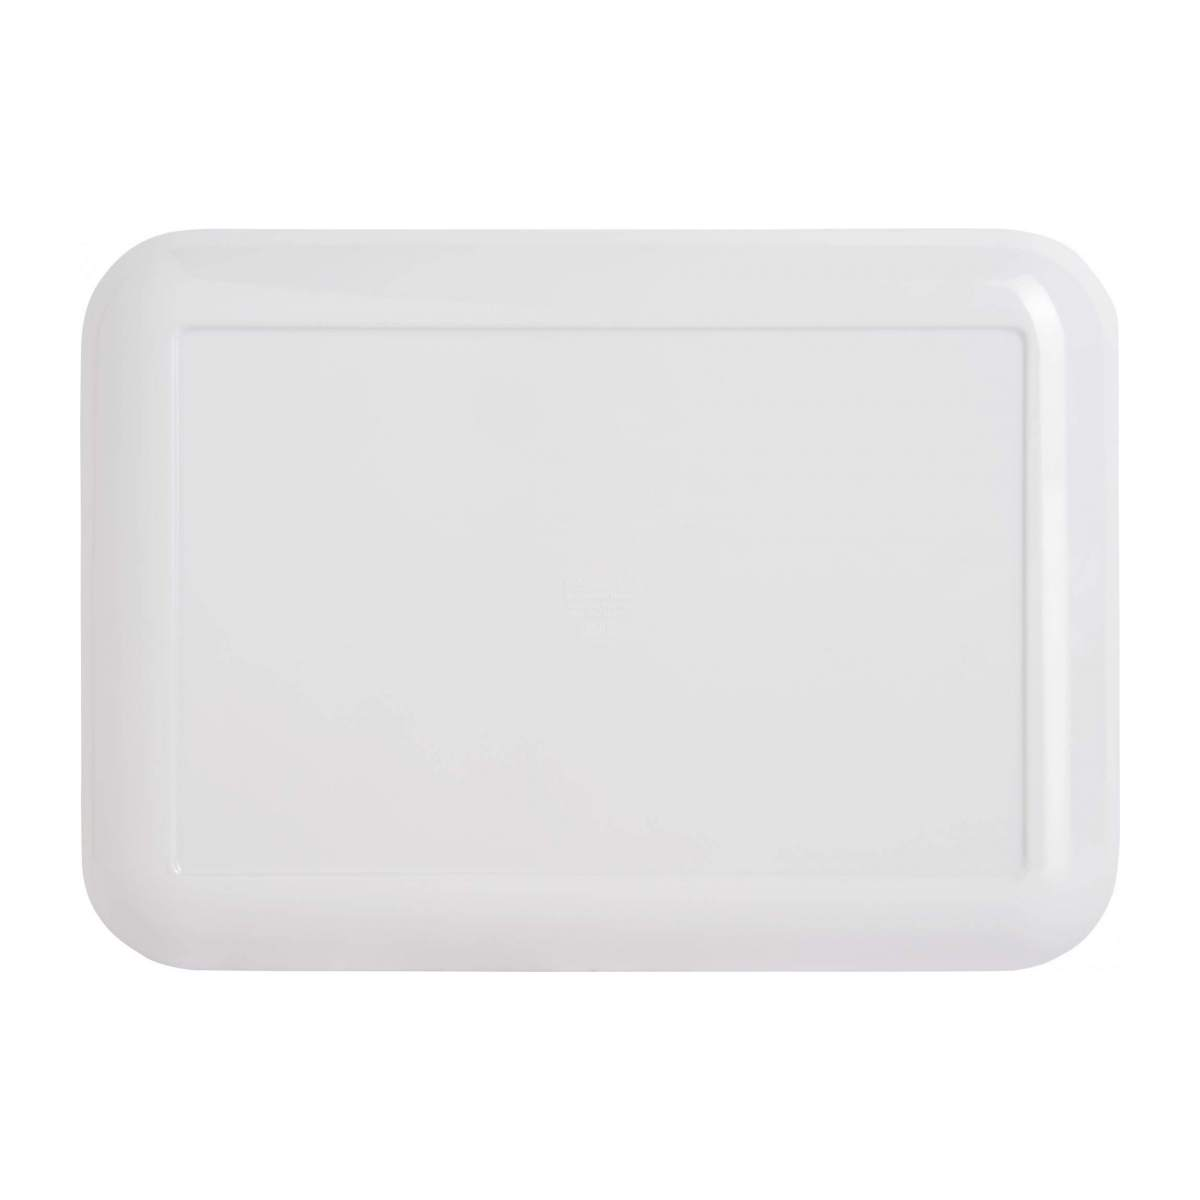 Tray made of melamine 35x25cm, with patterns n°5